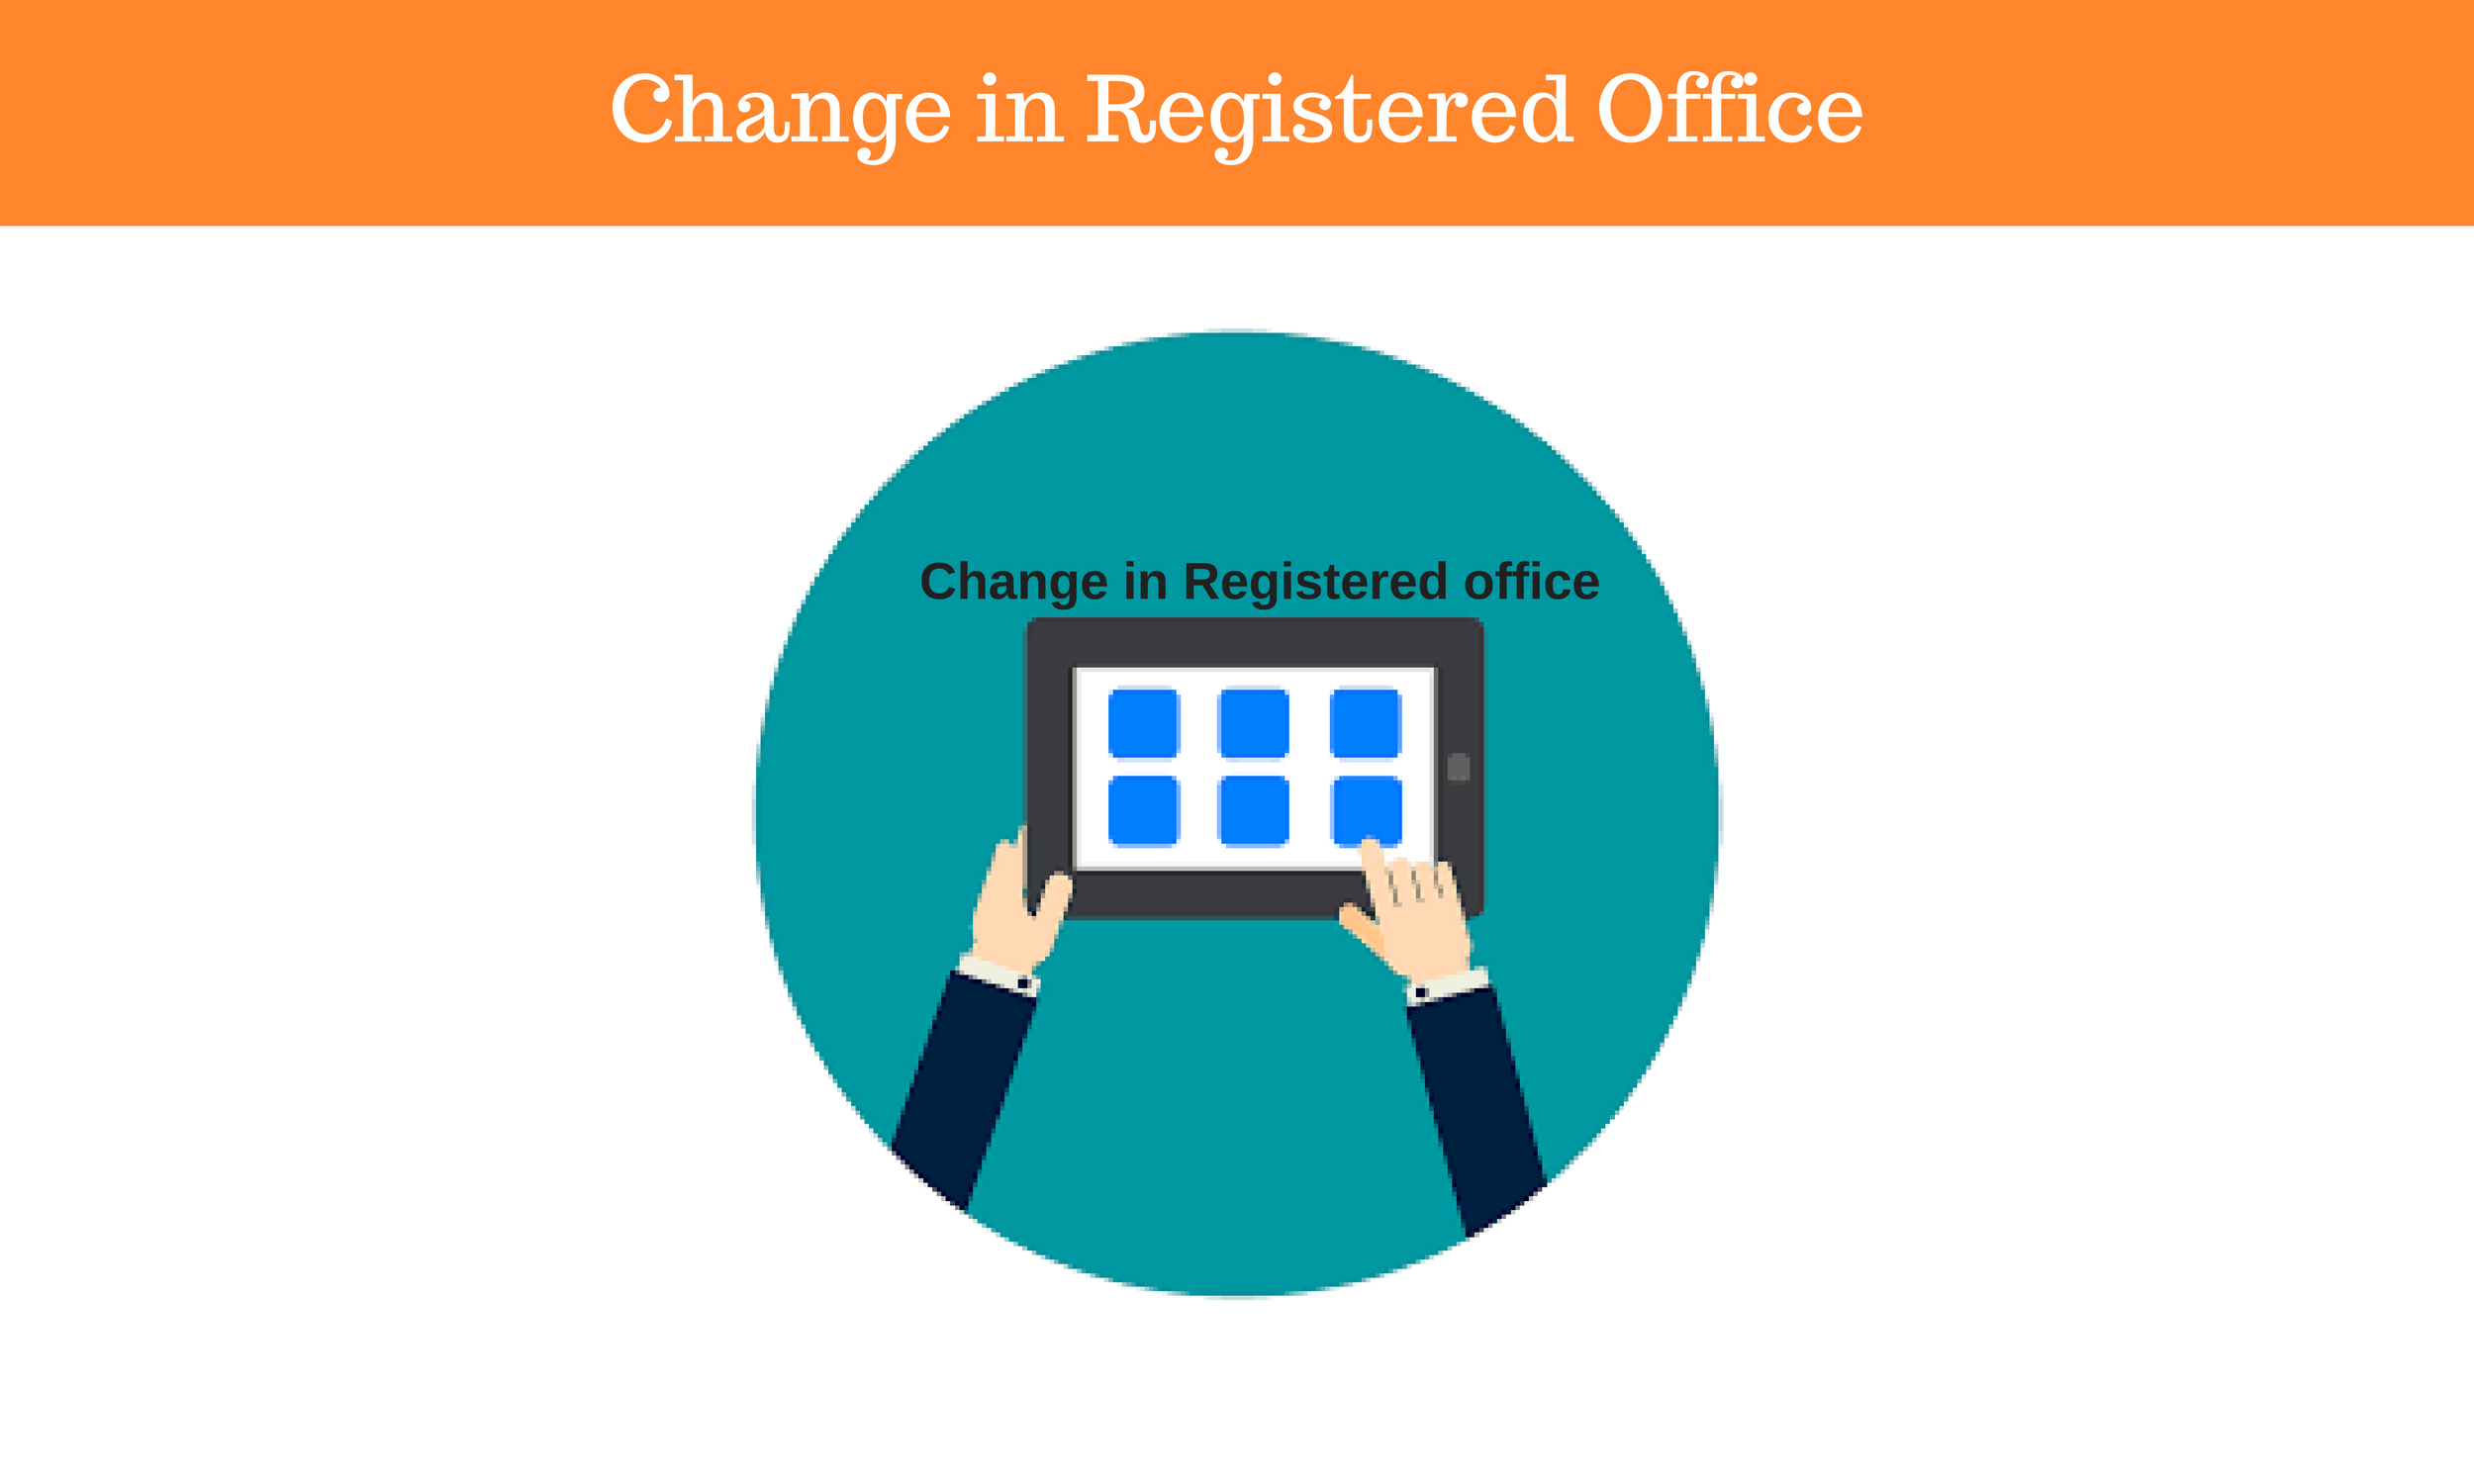 Change in Registered Office